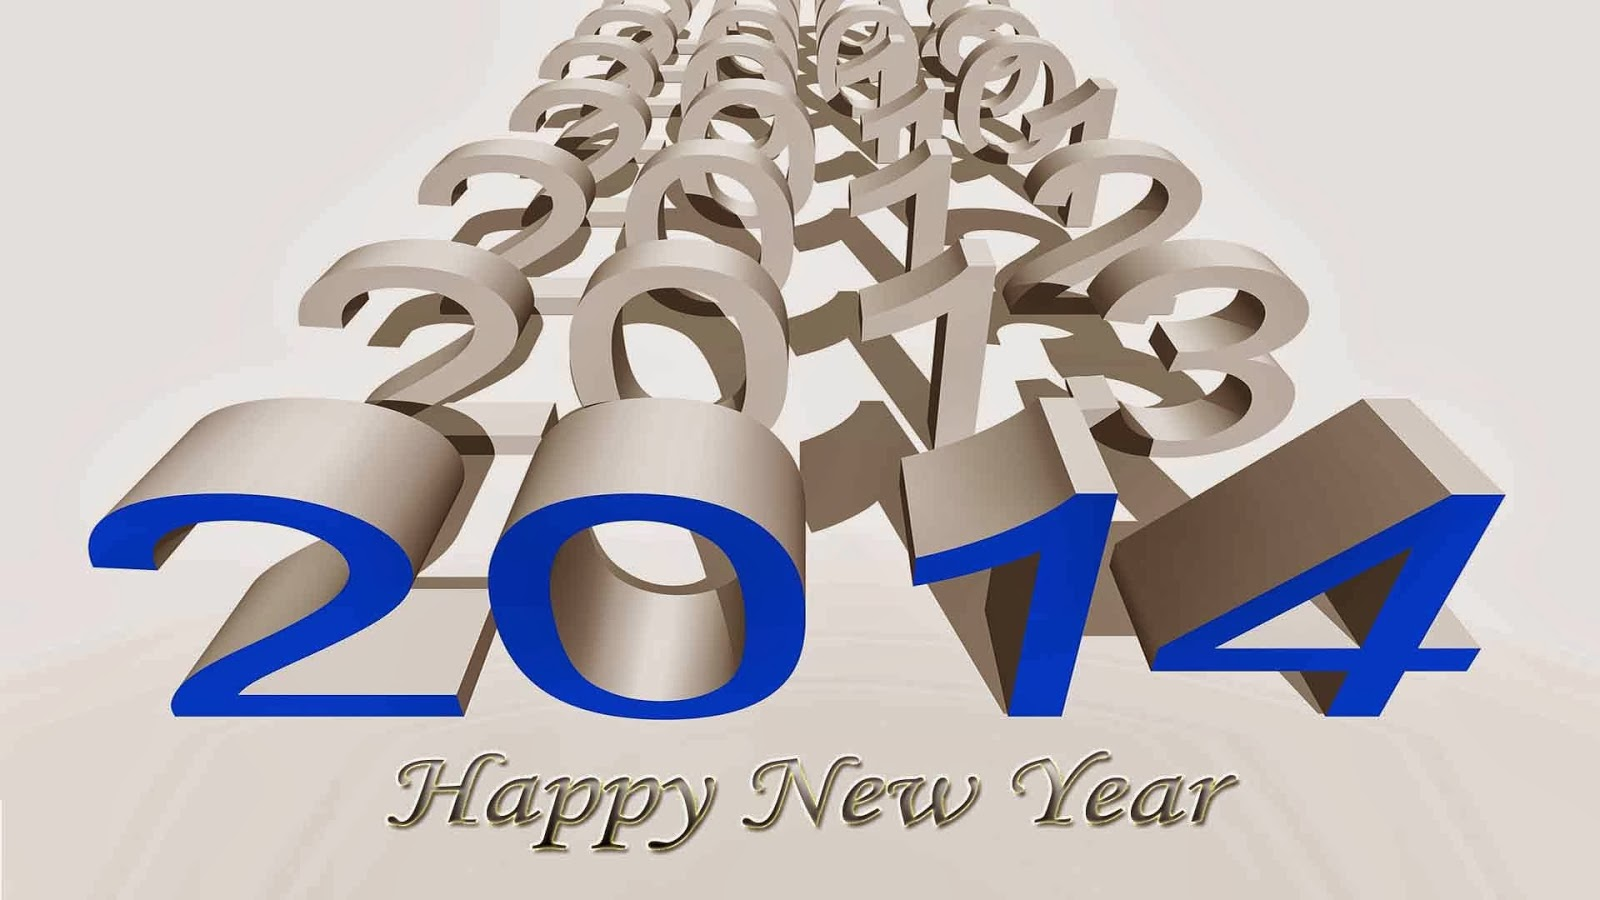 Year Sms Happy New Year 2014 Sms Poetry From Here. 1600 x 900.Happy New Year Hindi Songs Free Download